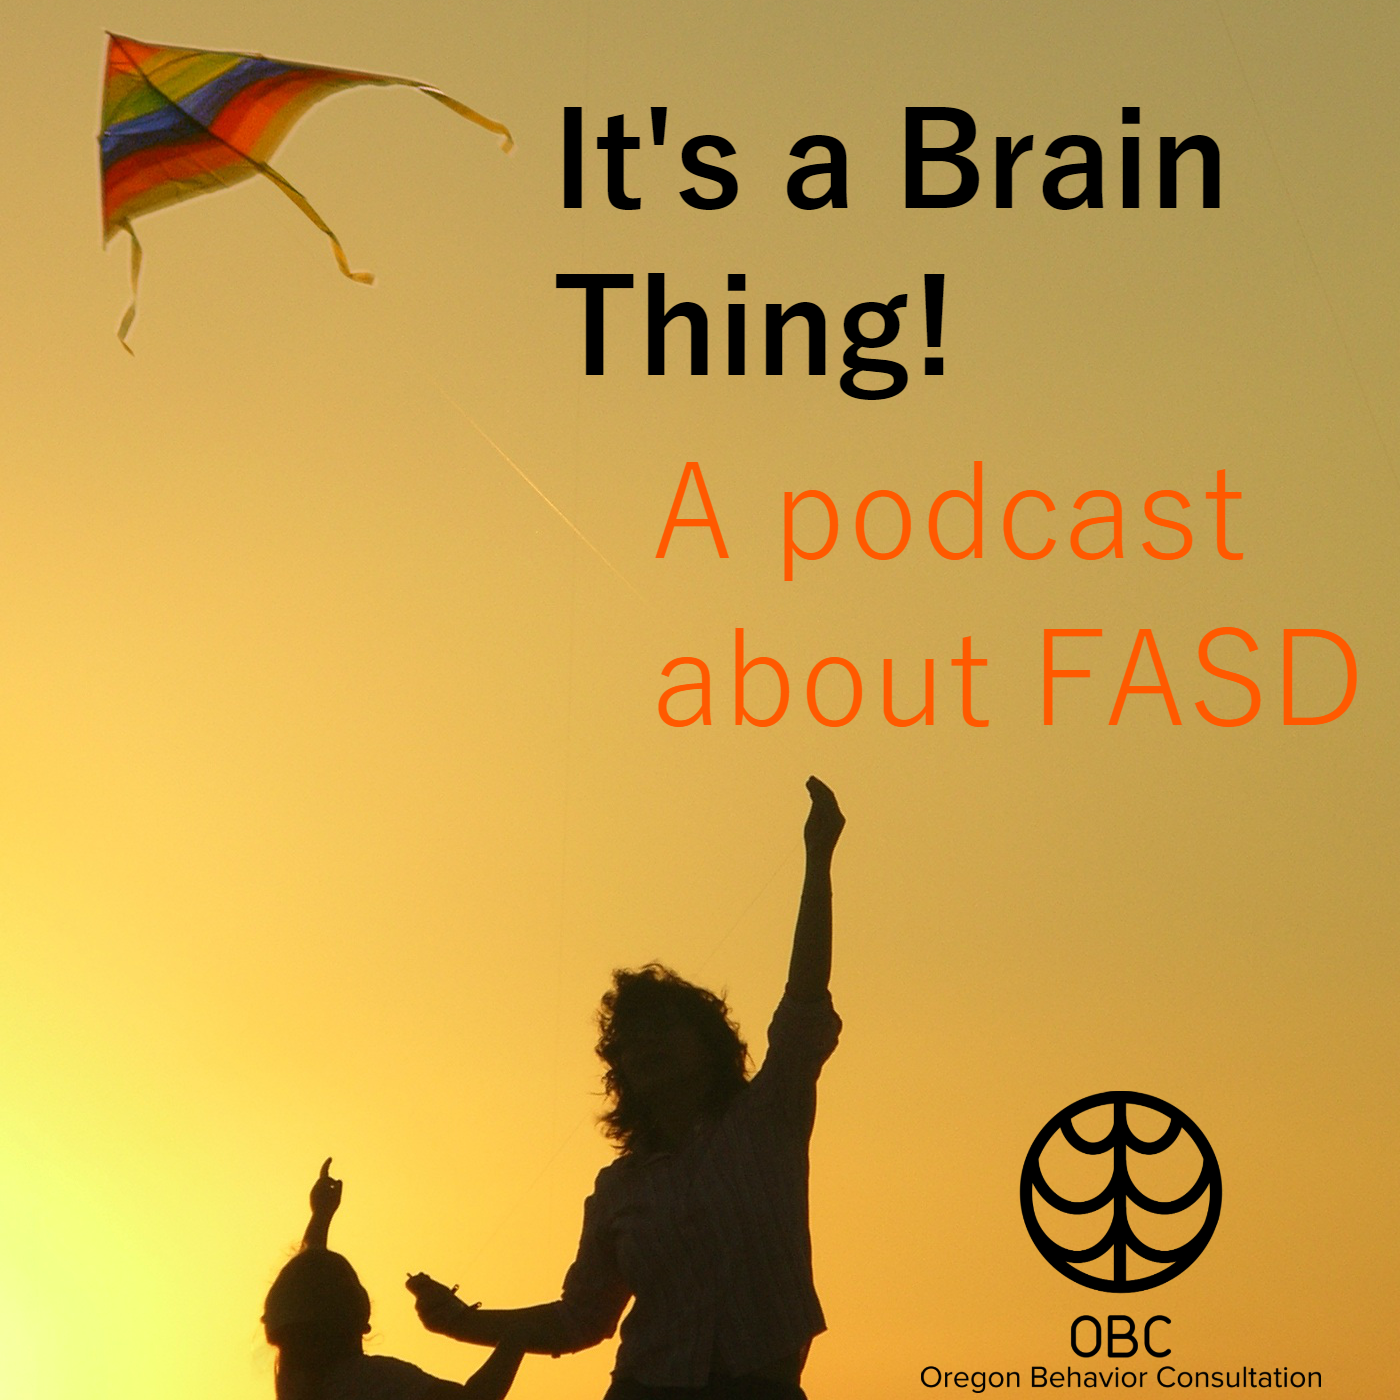 It's a Brain Thing - A Podcast About FASD